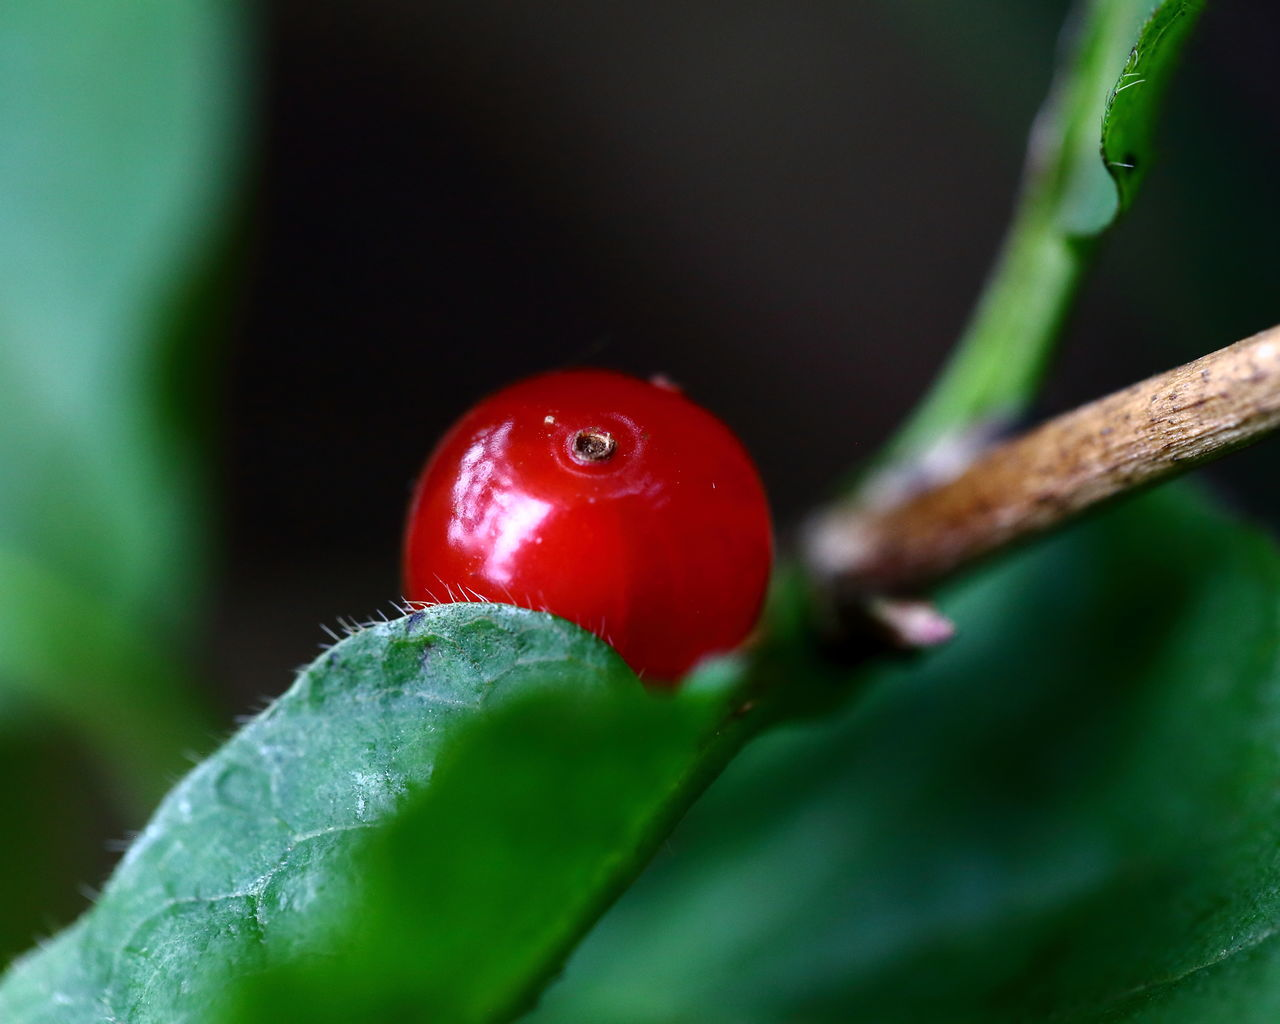 Beauty In Nature Berry Close-up Eye4photography  EyeEm Best Shots EyeEm Gallery EyeEm Nature Lover Food Fruit Green Growth Macro Natural Pattern Nature New Life Red Still Life Vibrant Color Wild Cherry Yummy TakeoverContrast Yummy♡ Sour Healthy Healthy Food